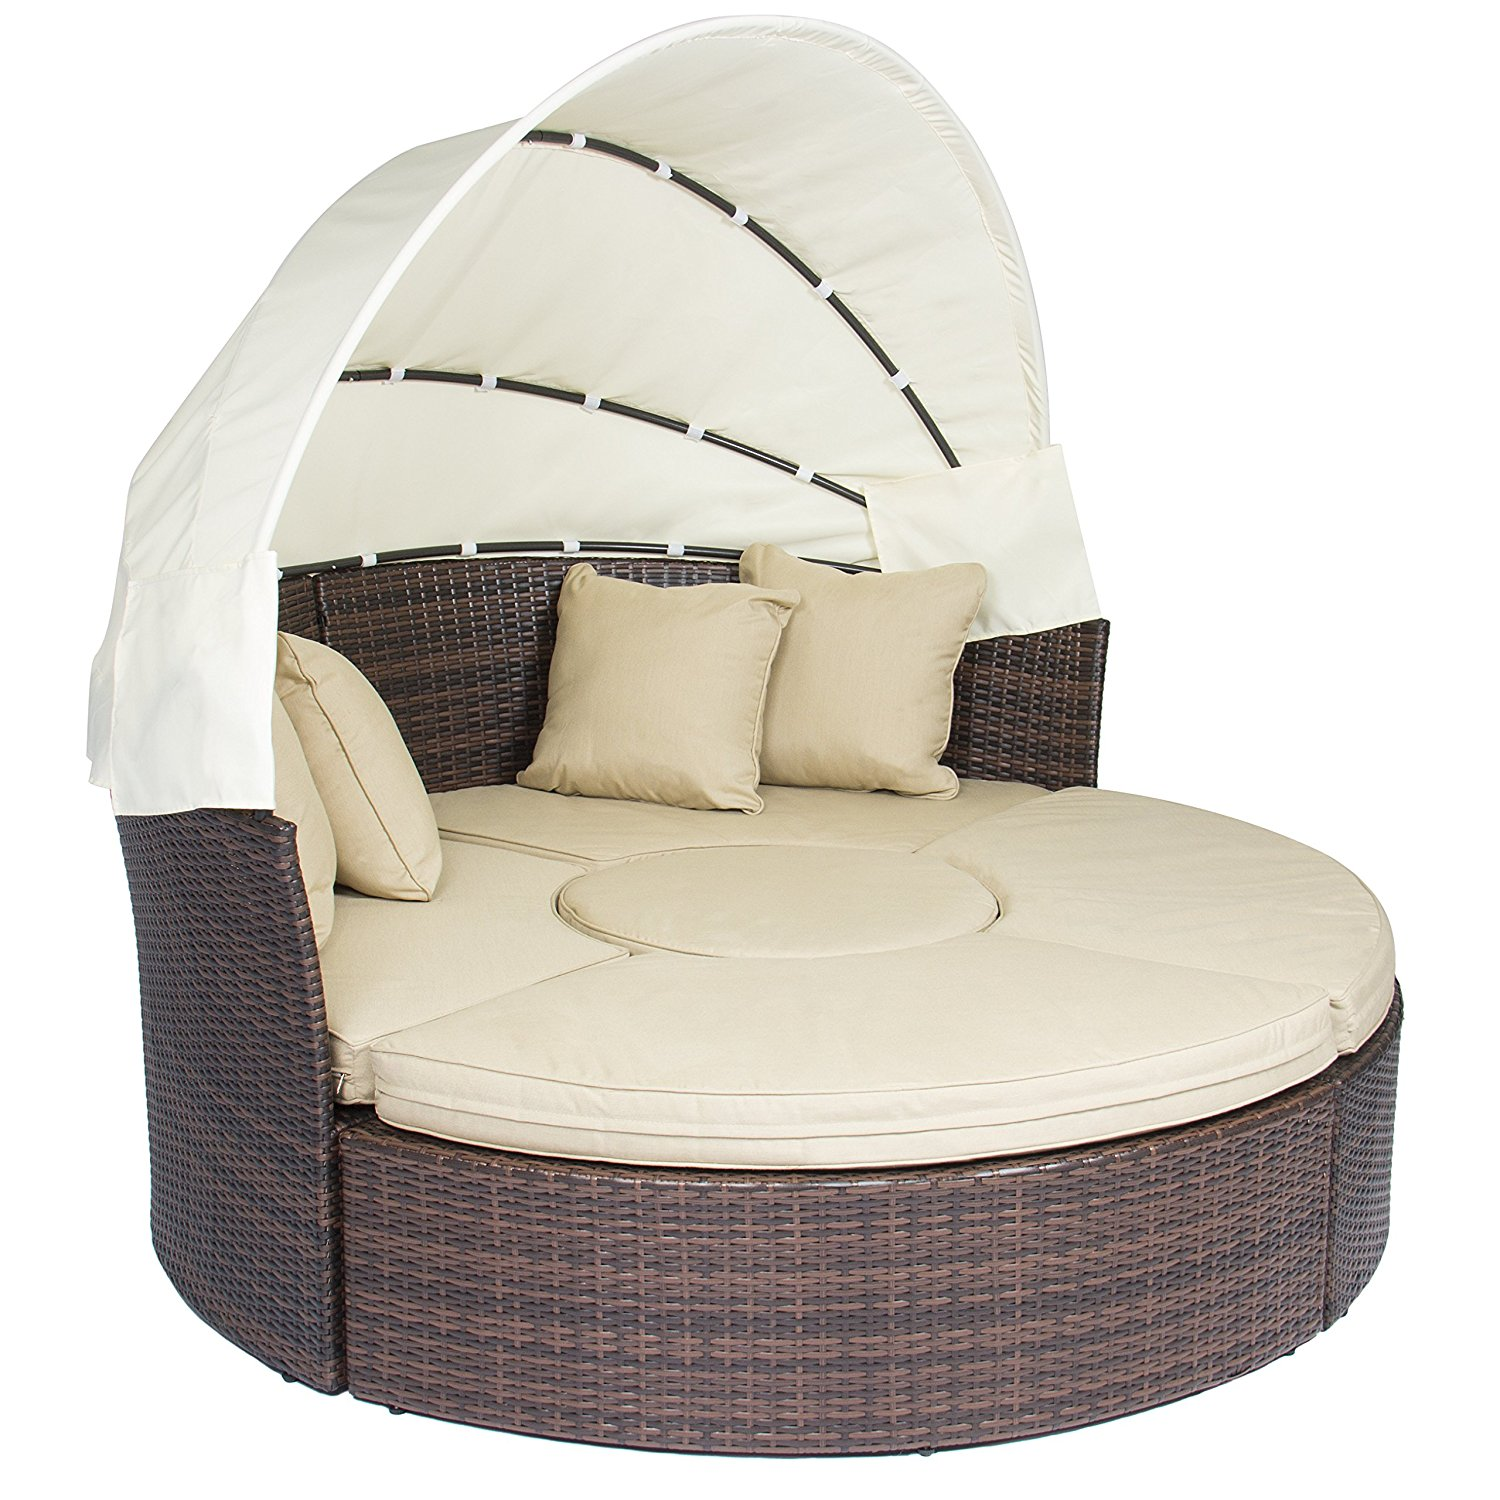 in Pool Lounger | Orbital Lounger | Orbit Chaise Lounge